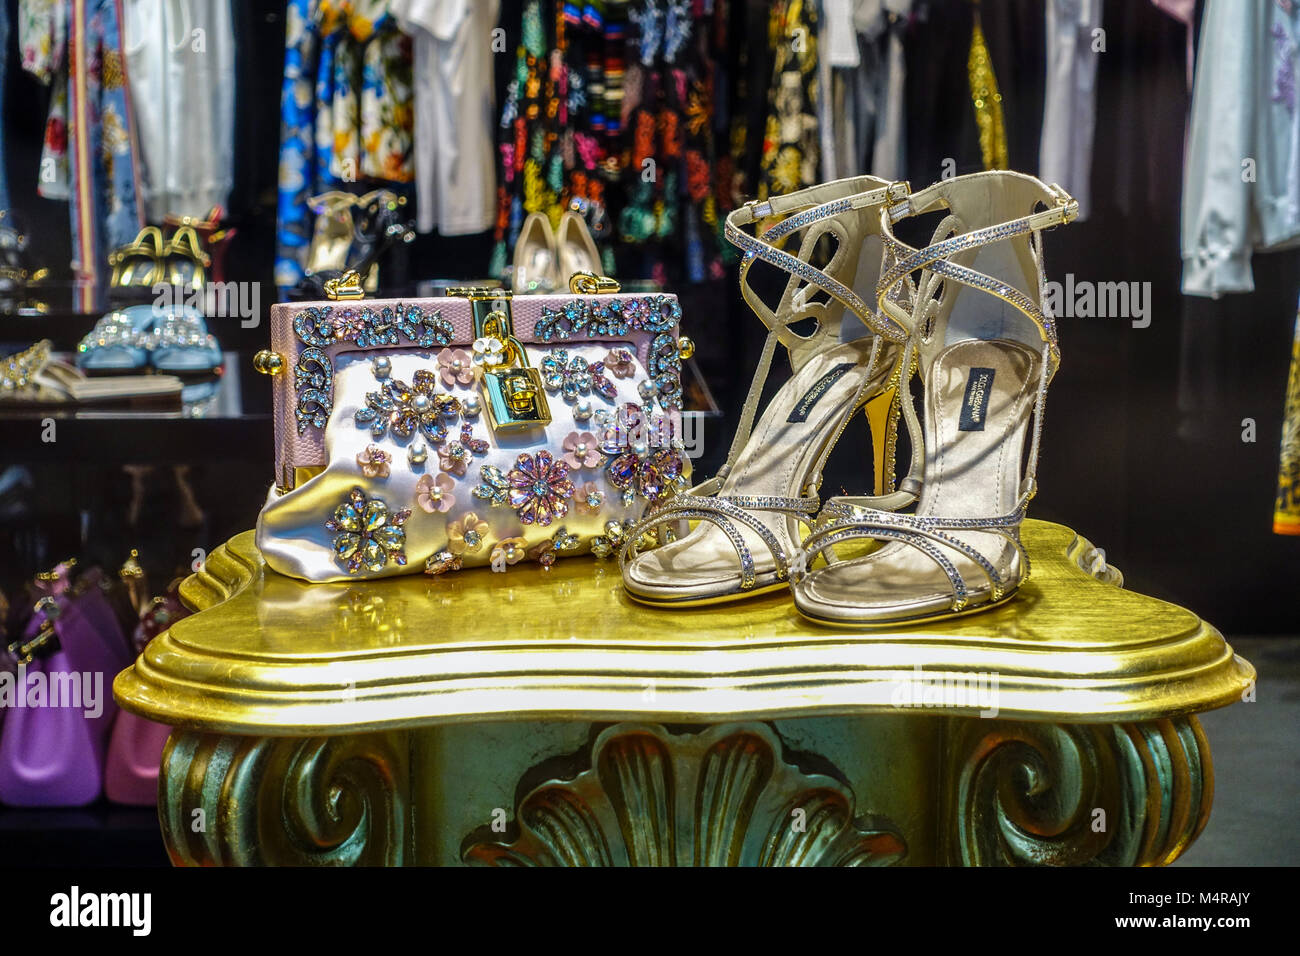 Dolce Gabbana store, Parizska street, Prague shopping, Czech Republic - Stock Image